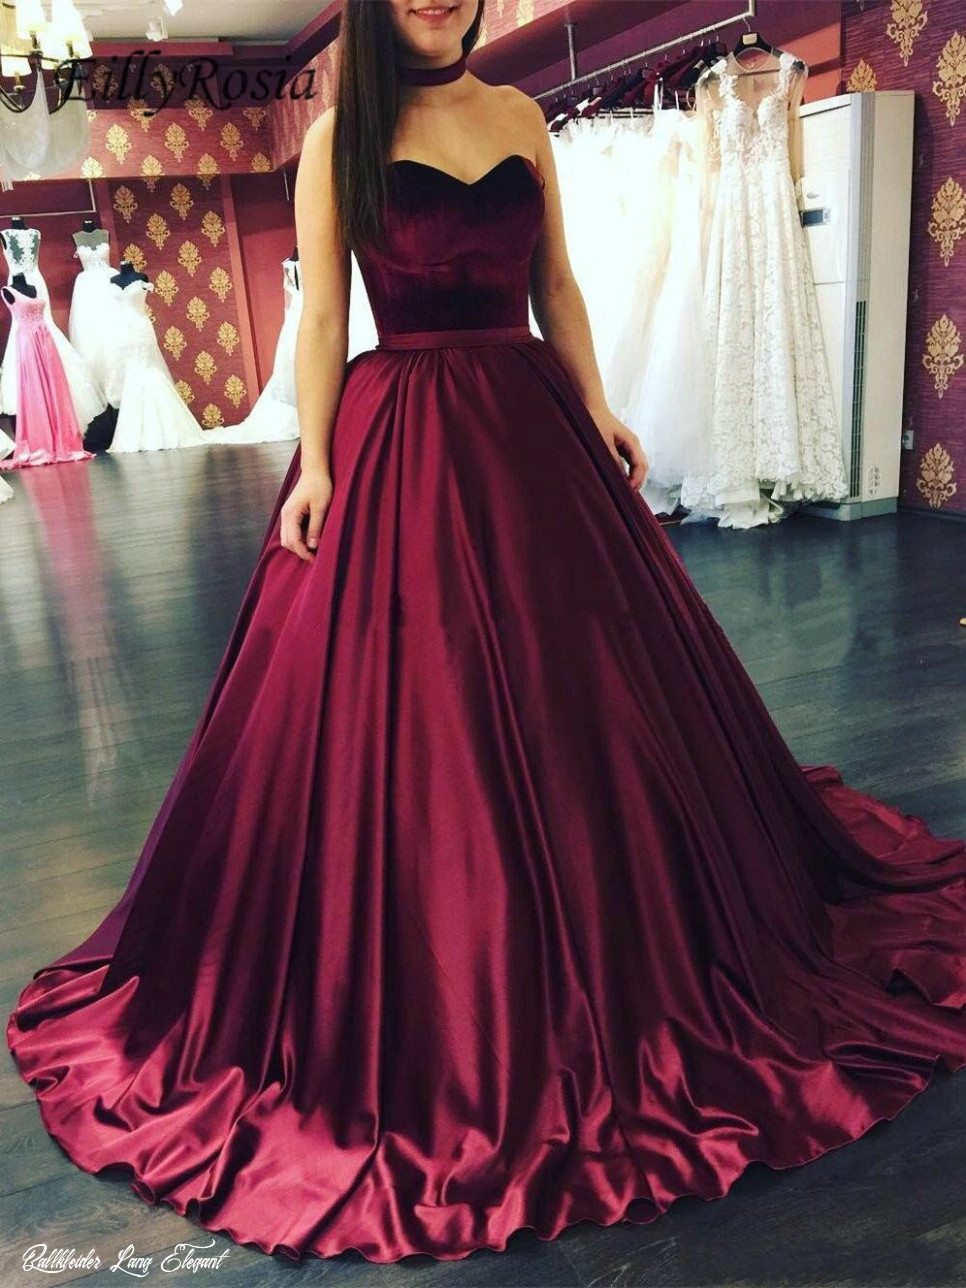 Big Discount Dark Red Satin Burgundy Prom Dresses Ball Gown Sweetheart  Sweep Train Elegant Grils Graduation Gala Dress ballkleider lang 8  October